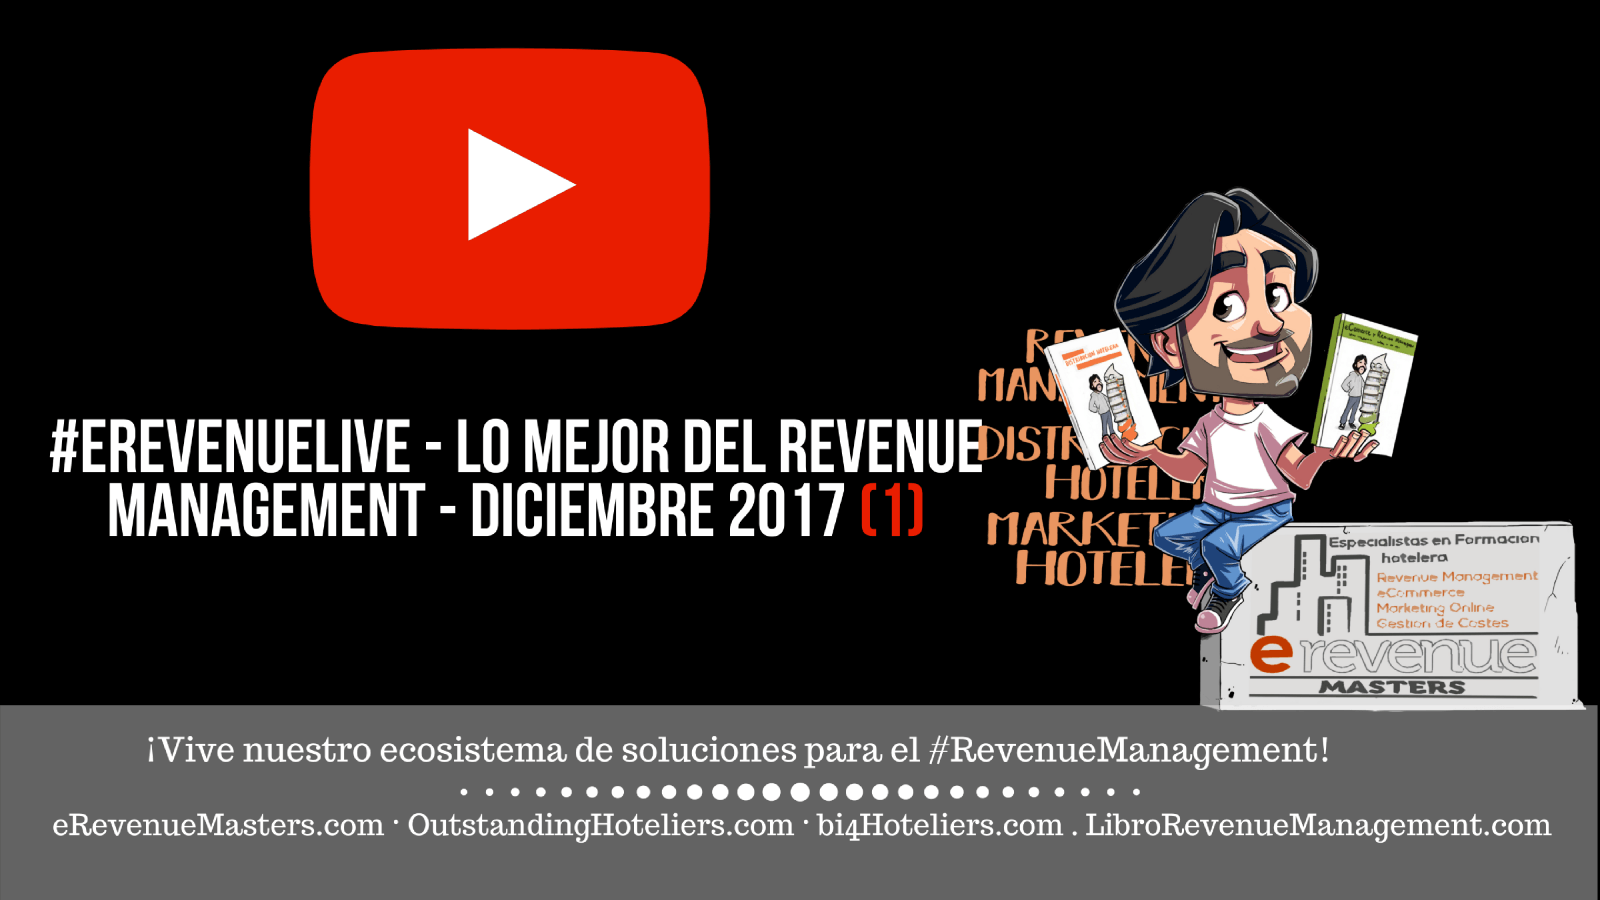 (video & Podcast) #eRevenueLive - Lo mejor del Revenue Management - Diciembre 2017 (1)